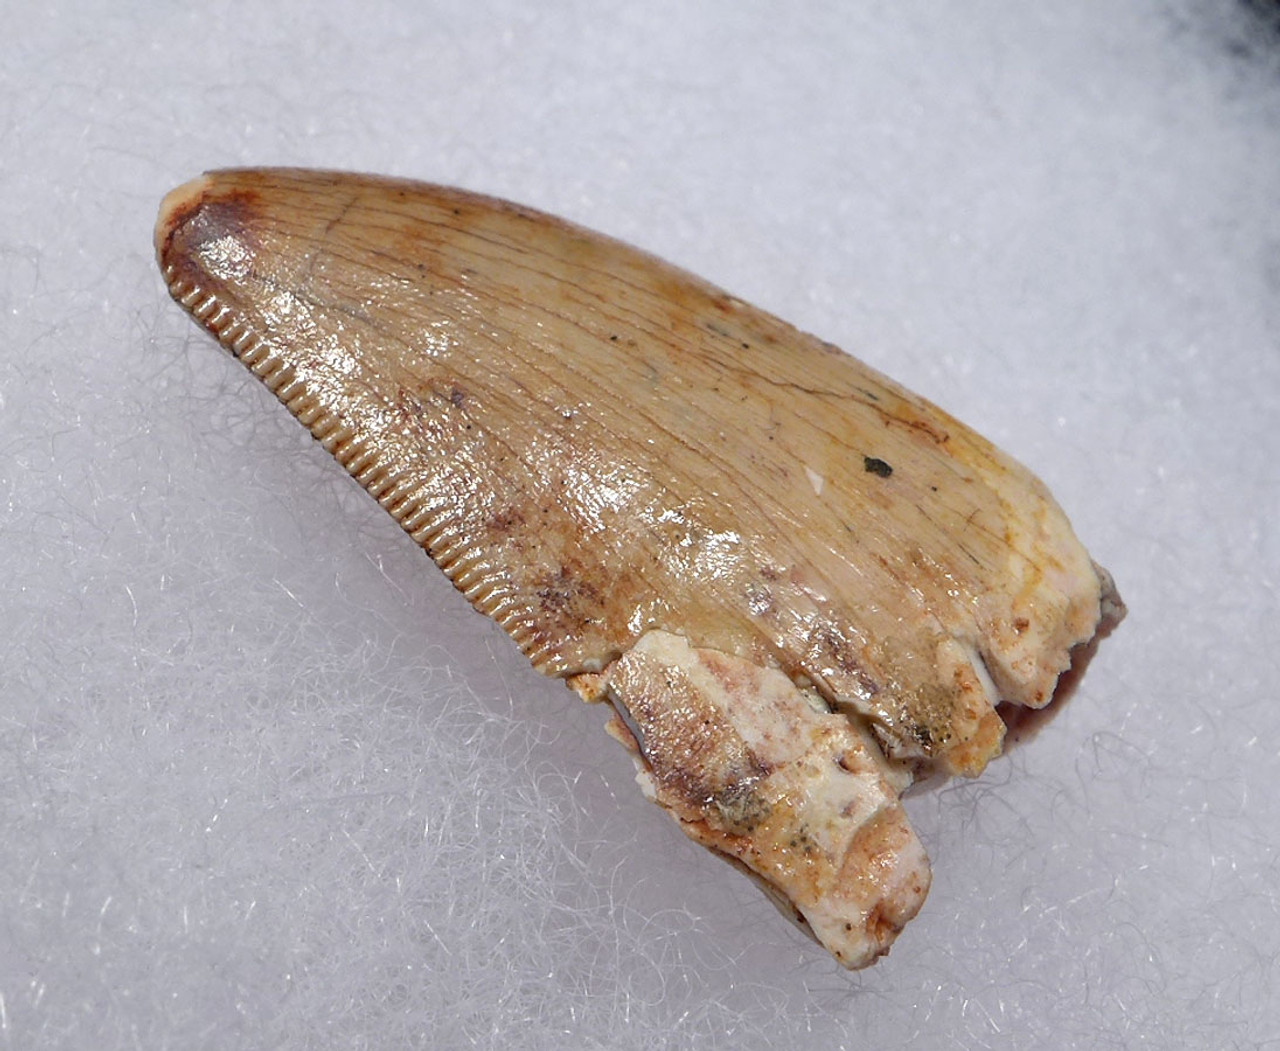 INEXPENSIVE POSTERIOR CARCHARODONTOSAURUS FOSSIL DINOSAUR TOOTH  *DT2-117